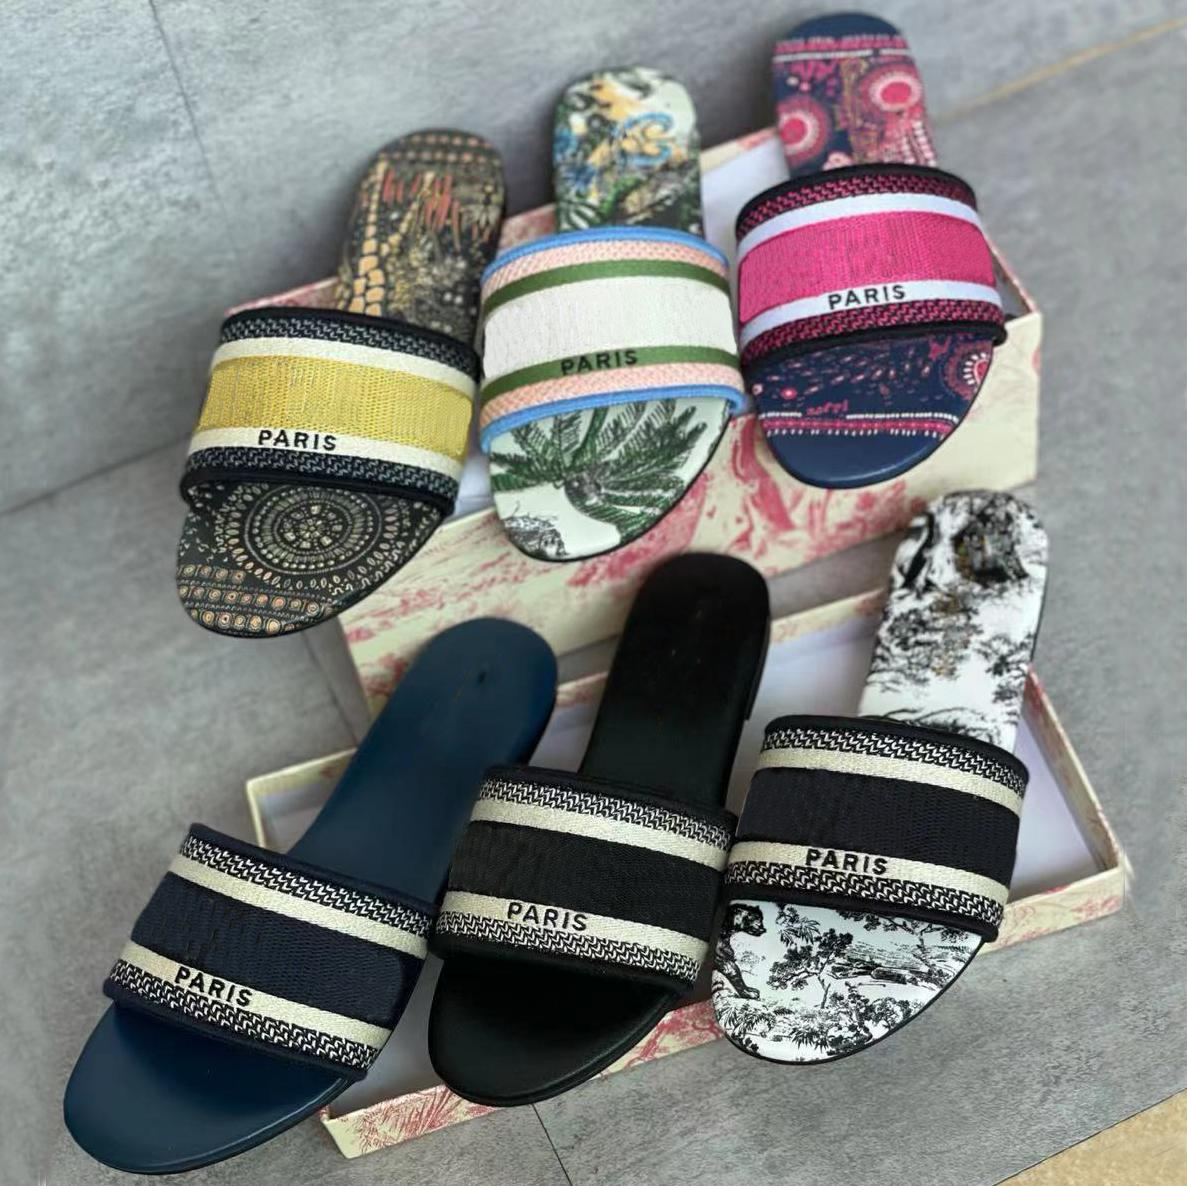 2021 Designer Dway Slides Women Flat Slipper Embroidered Cotton upper Sandal Multicolor Fashion Summer Beach Sexy Slippers Flip Flops Top Quality With Box